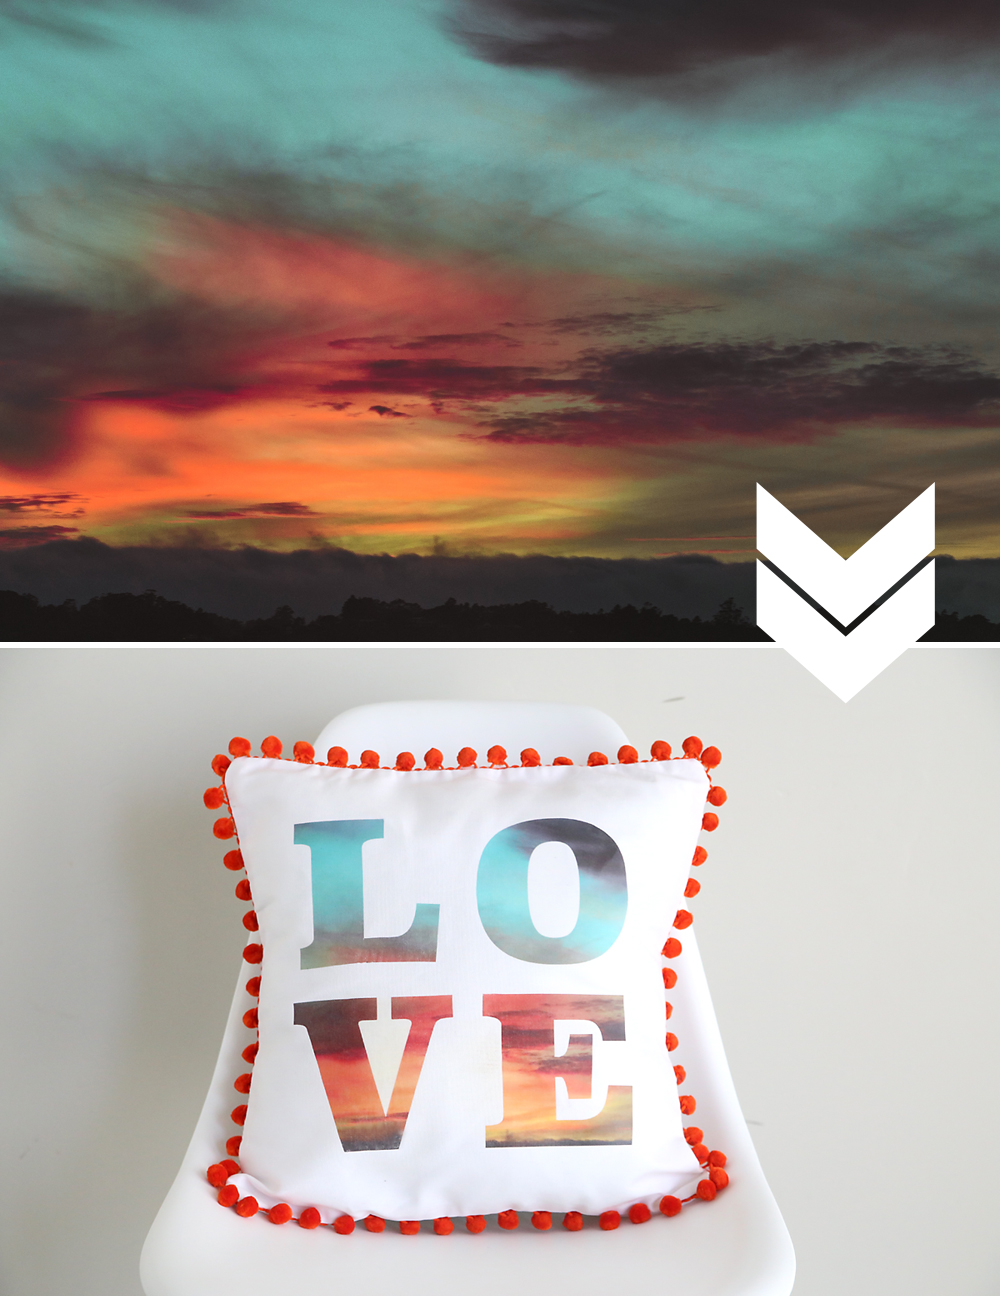 photo of a sunset; photo placed into the letters on the throw pillow